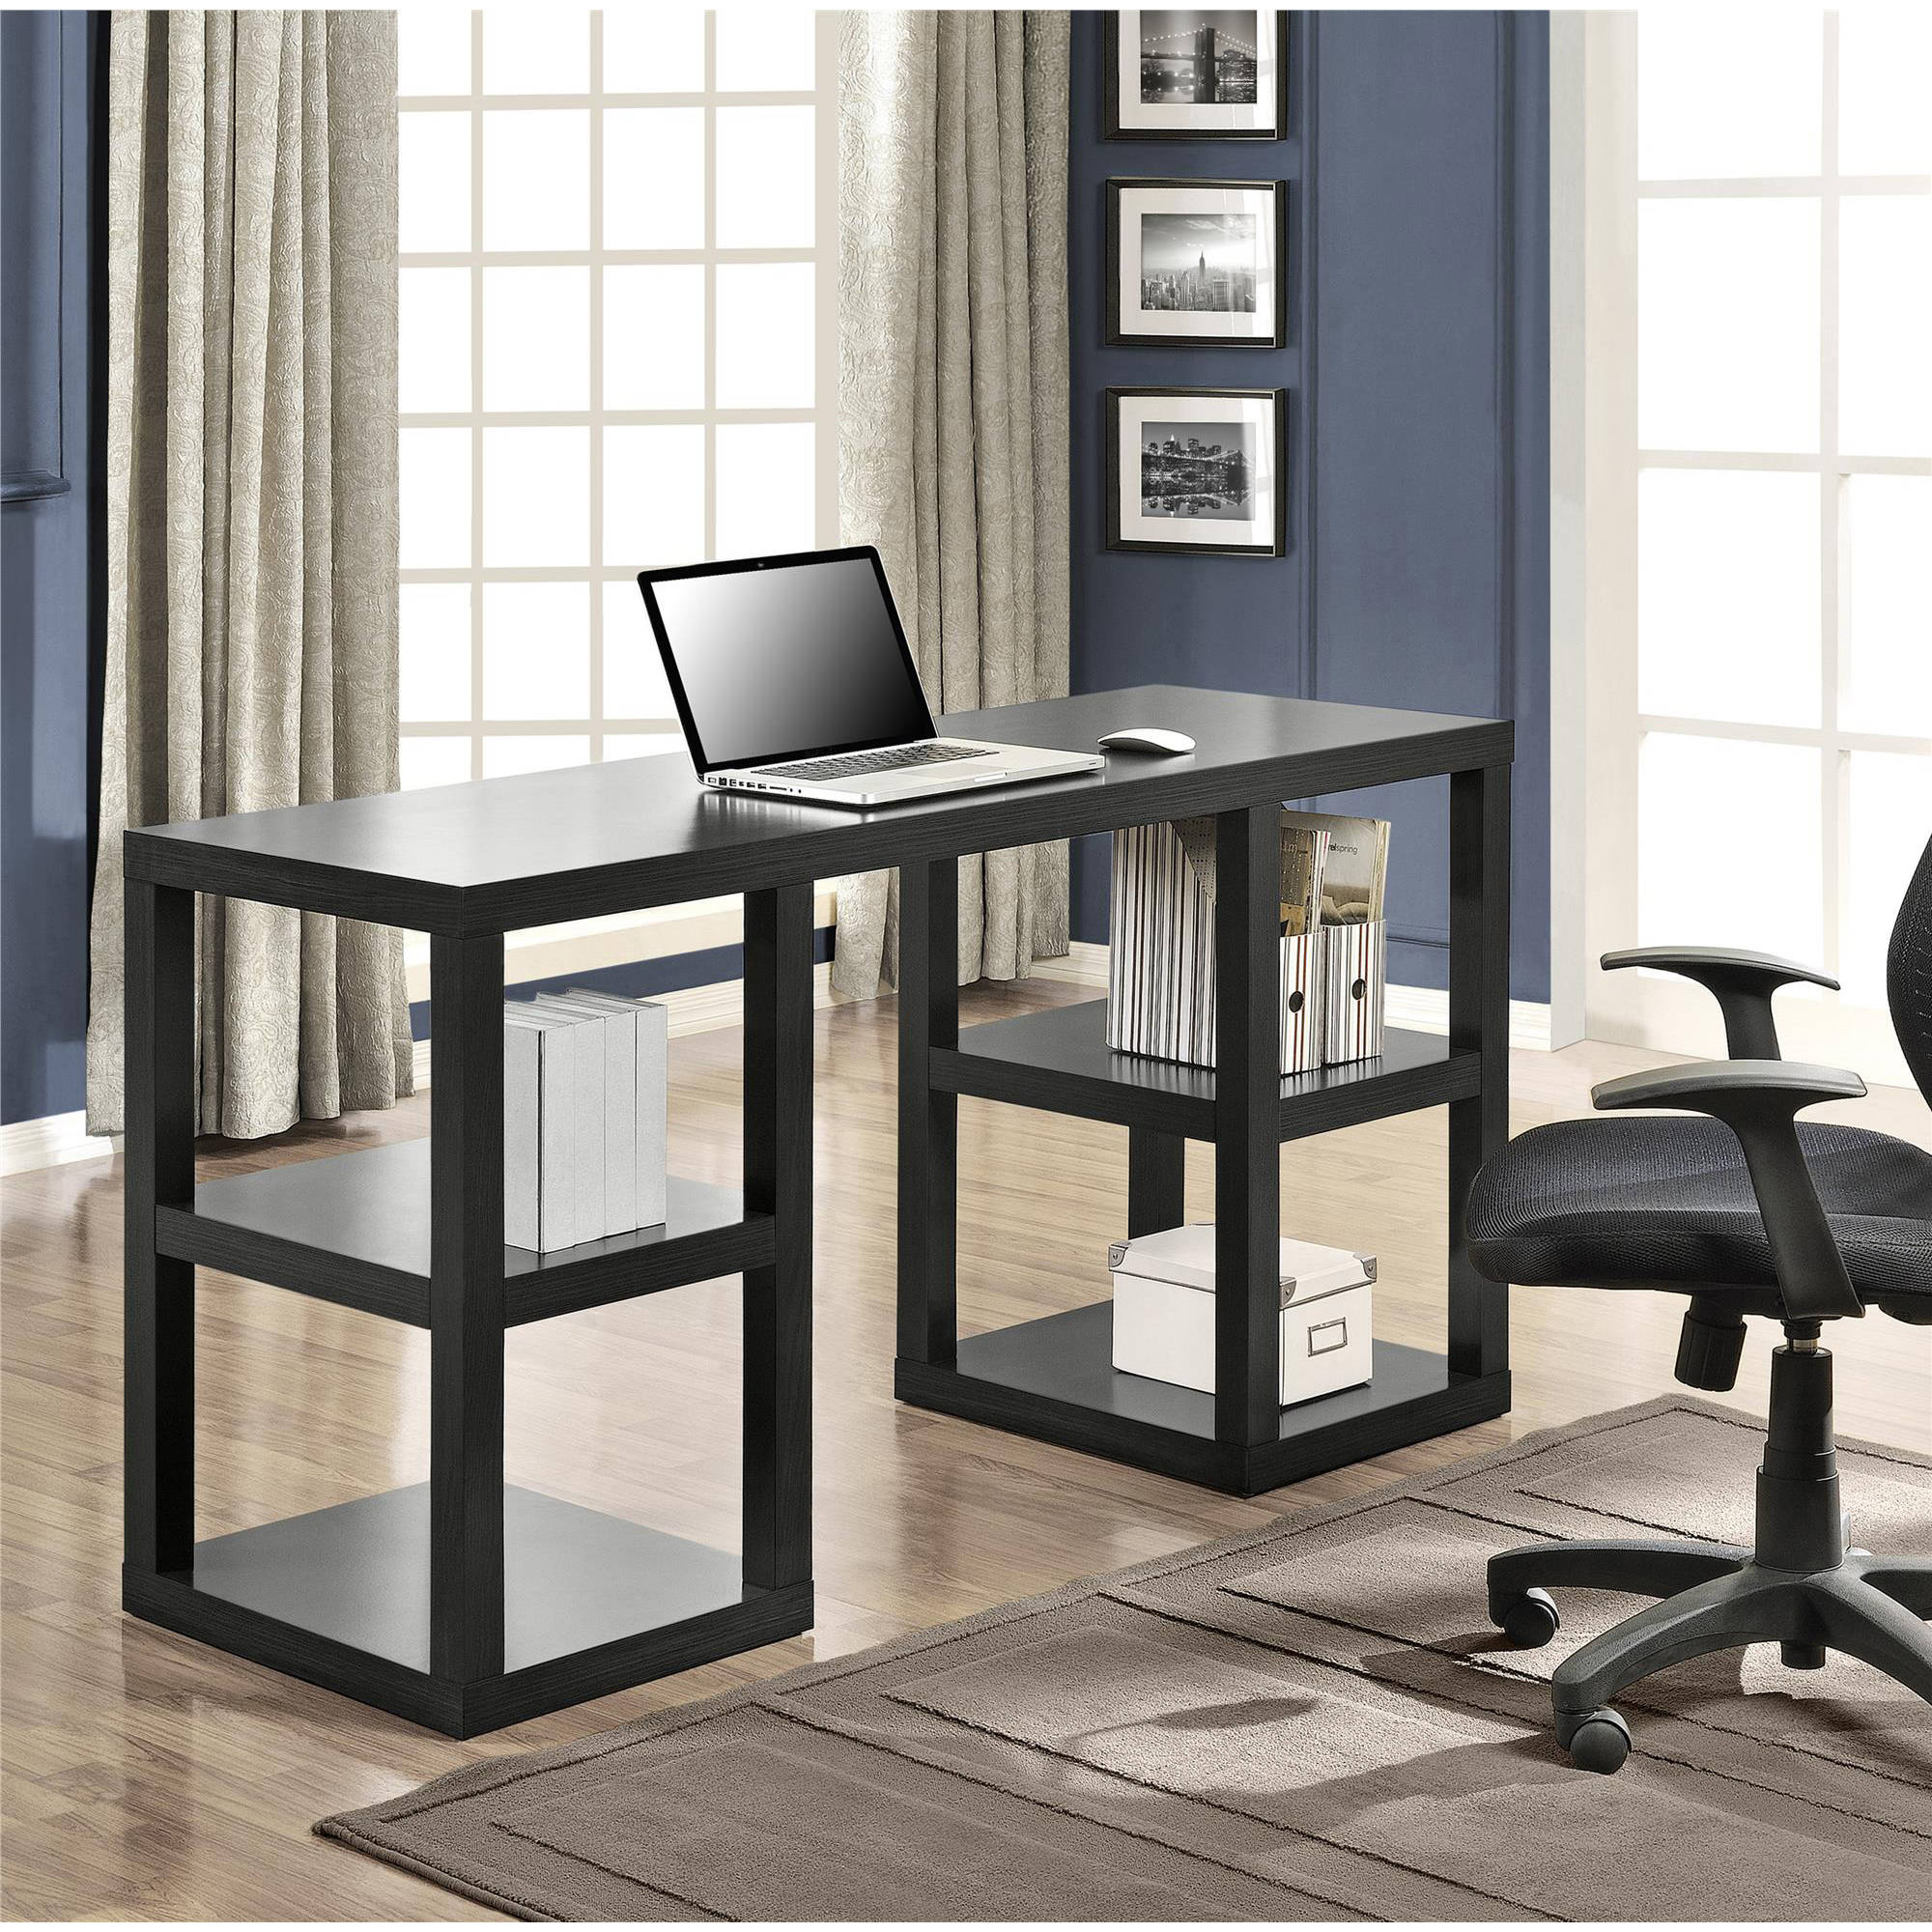 Hom Office Furniture: Computer Desk Home Office Double Pedestal Parsons Desk